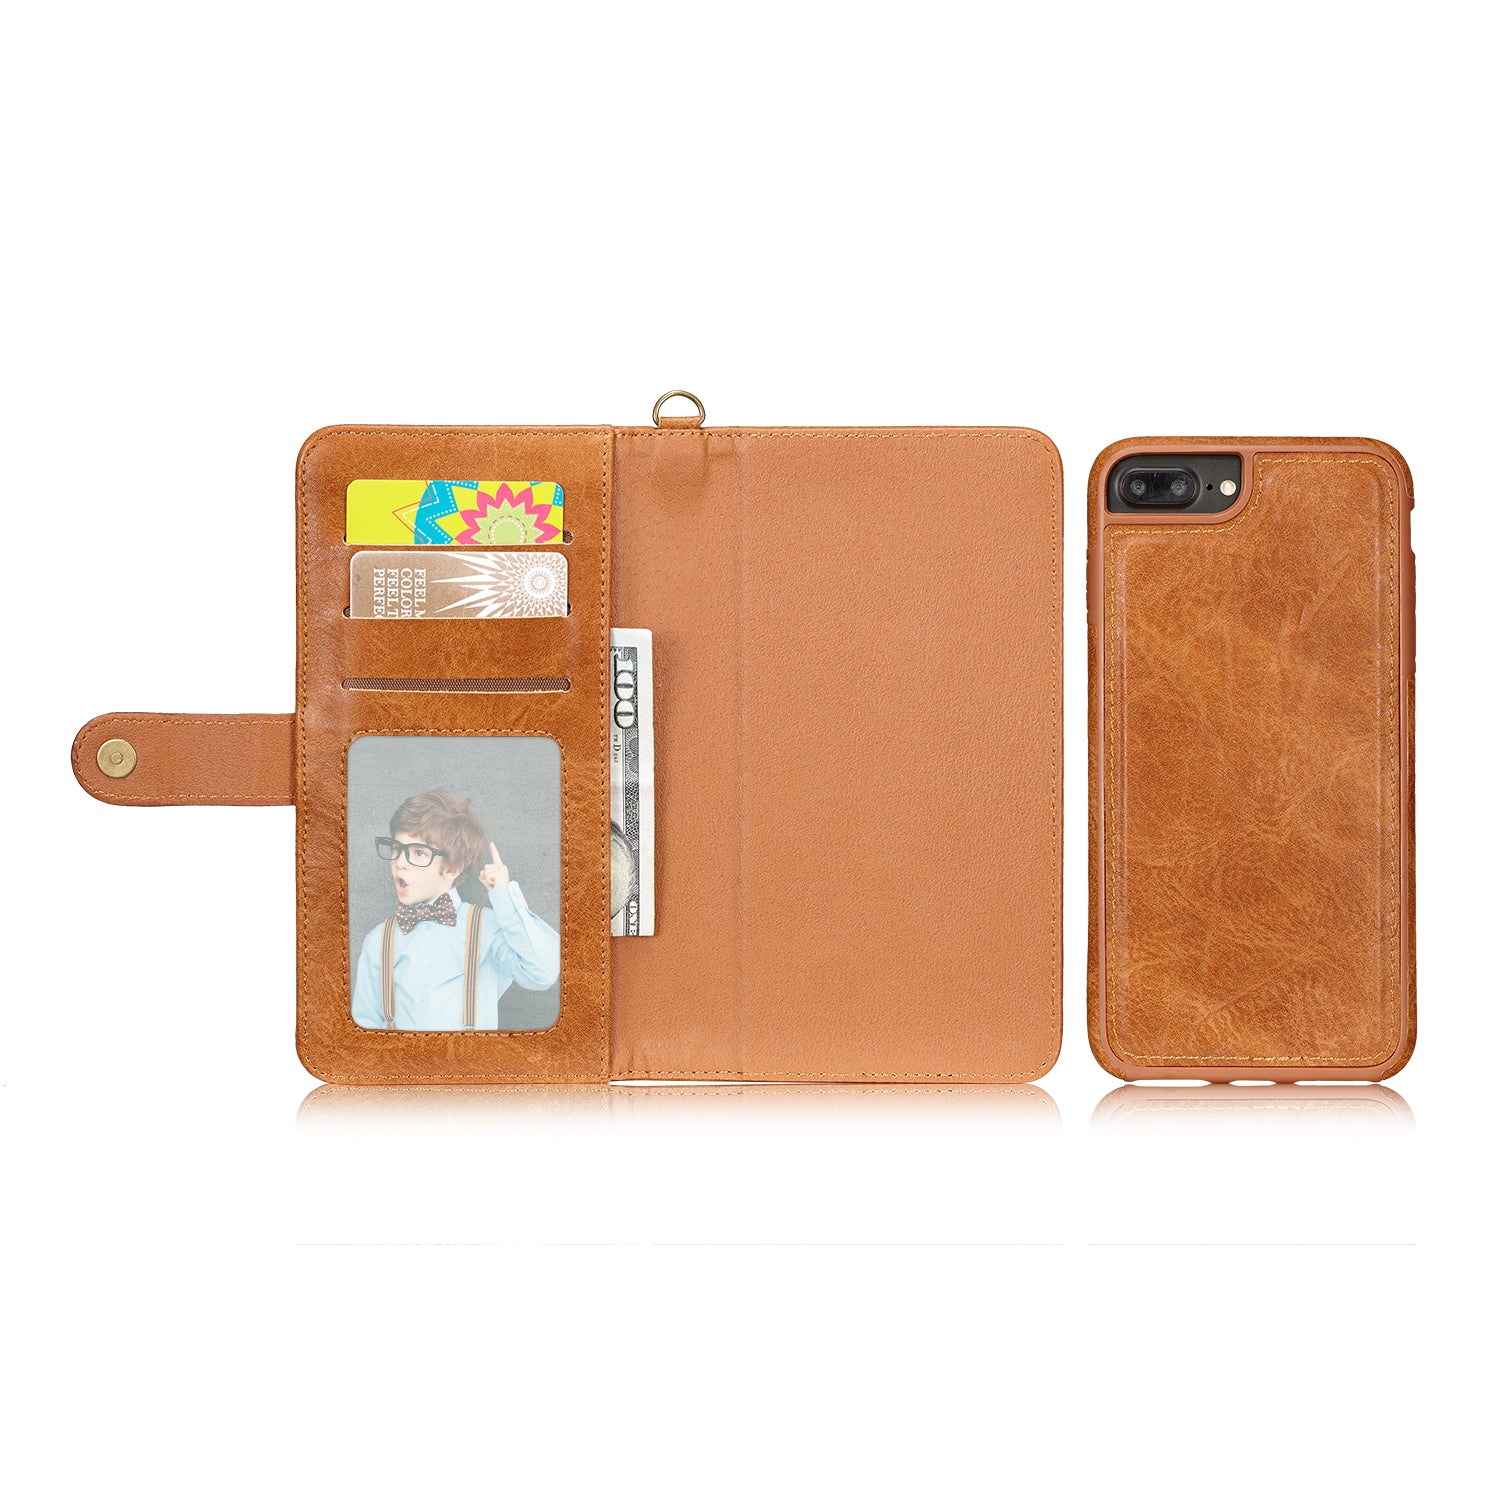 Genuine leather hand lance wallet 9 cards detached iPhone 7 Case 4.7 inch